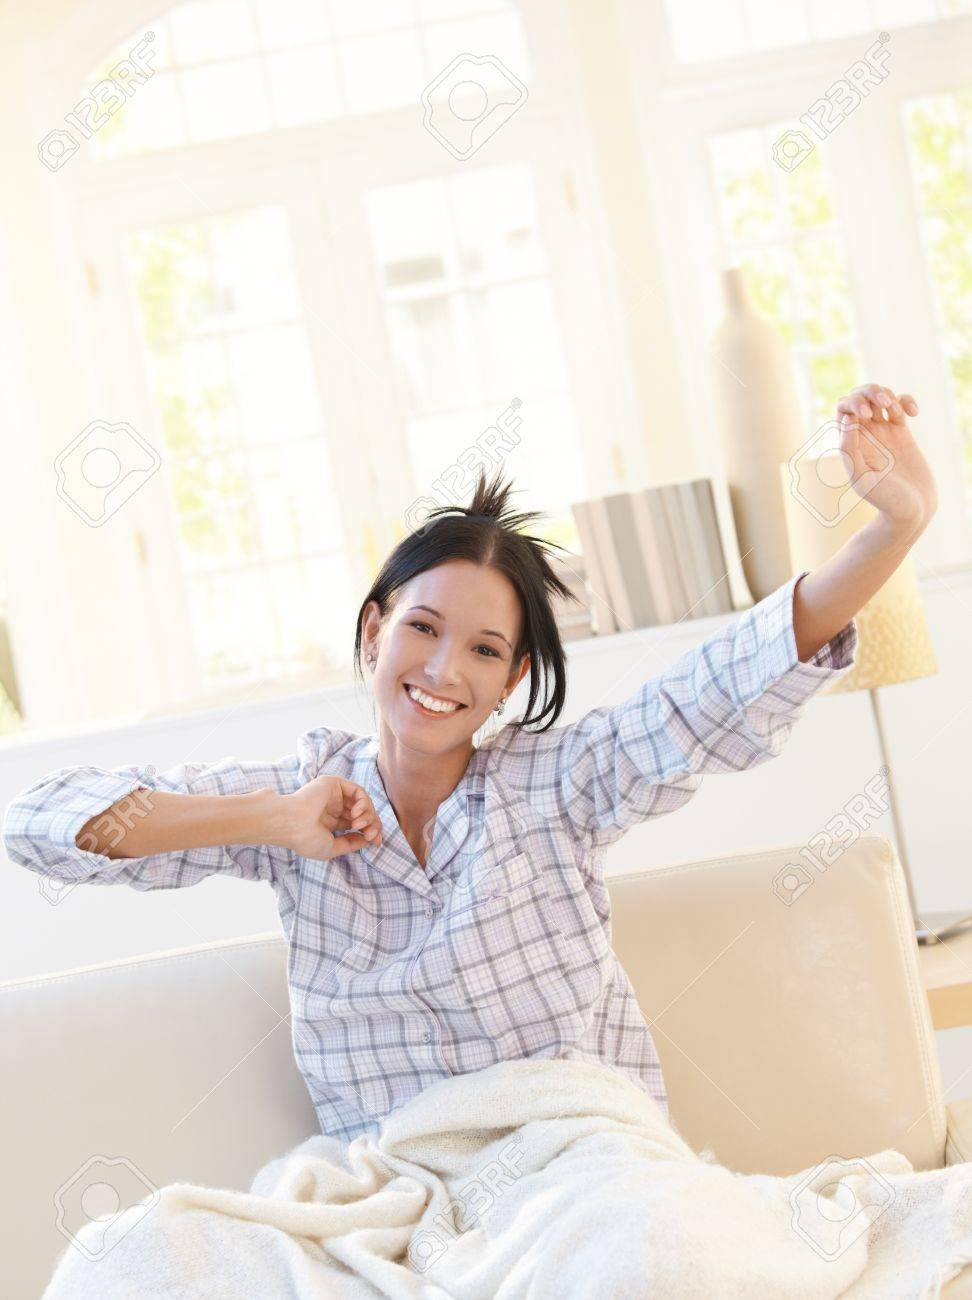 Happy attractive woman stretching in pyjama on sofa in bright living room, smiling at camera. Stock Photo - 8908490